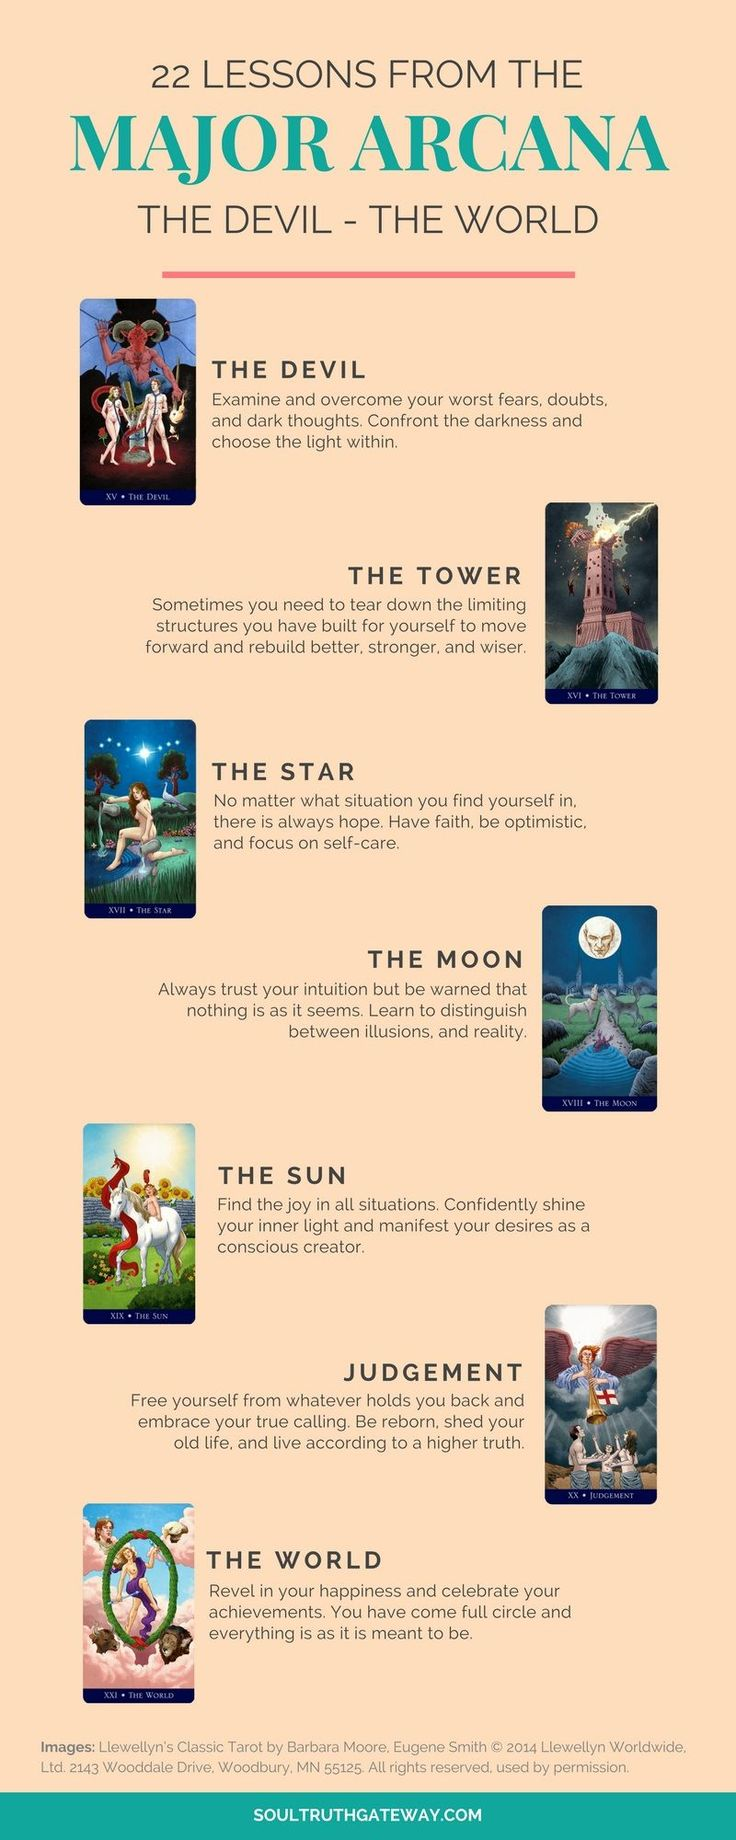 22 Lessons From The Major Arcana Part 3: The Devil - The World | Tarot Card Meanings | Tarot Card Meanings Cheat Sheets | Tarot Cheat Sheet | Tarot Major Arcana | Tarot Major Arcana Meanings | Fools Journey Tarot #tarot #soultruthgateway #tarotcardstips